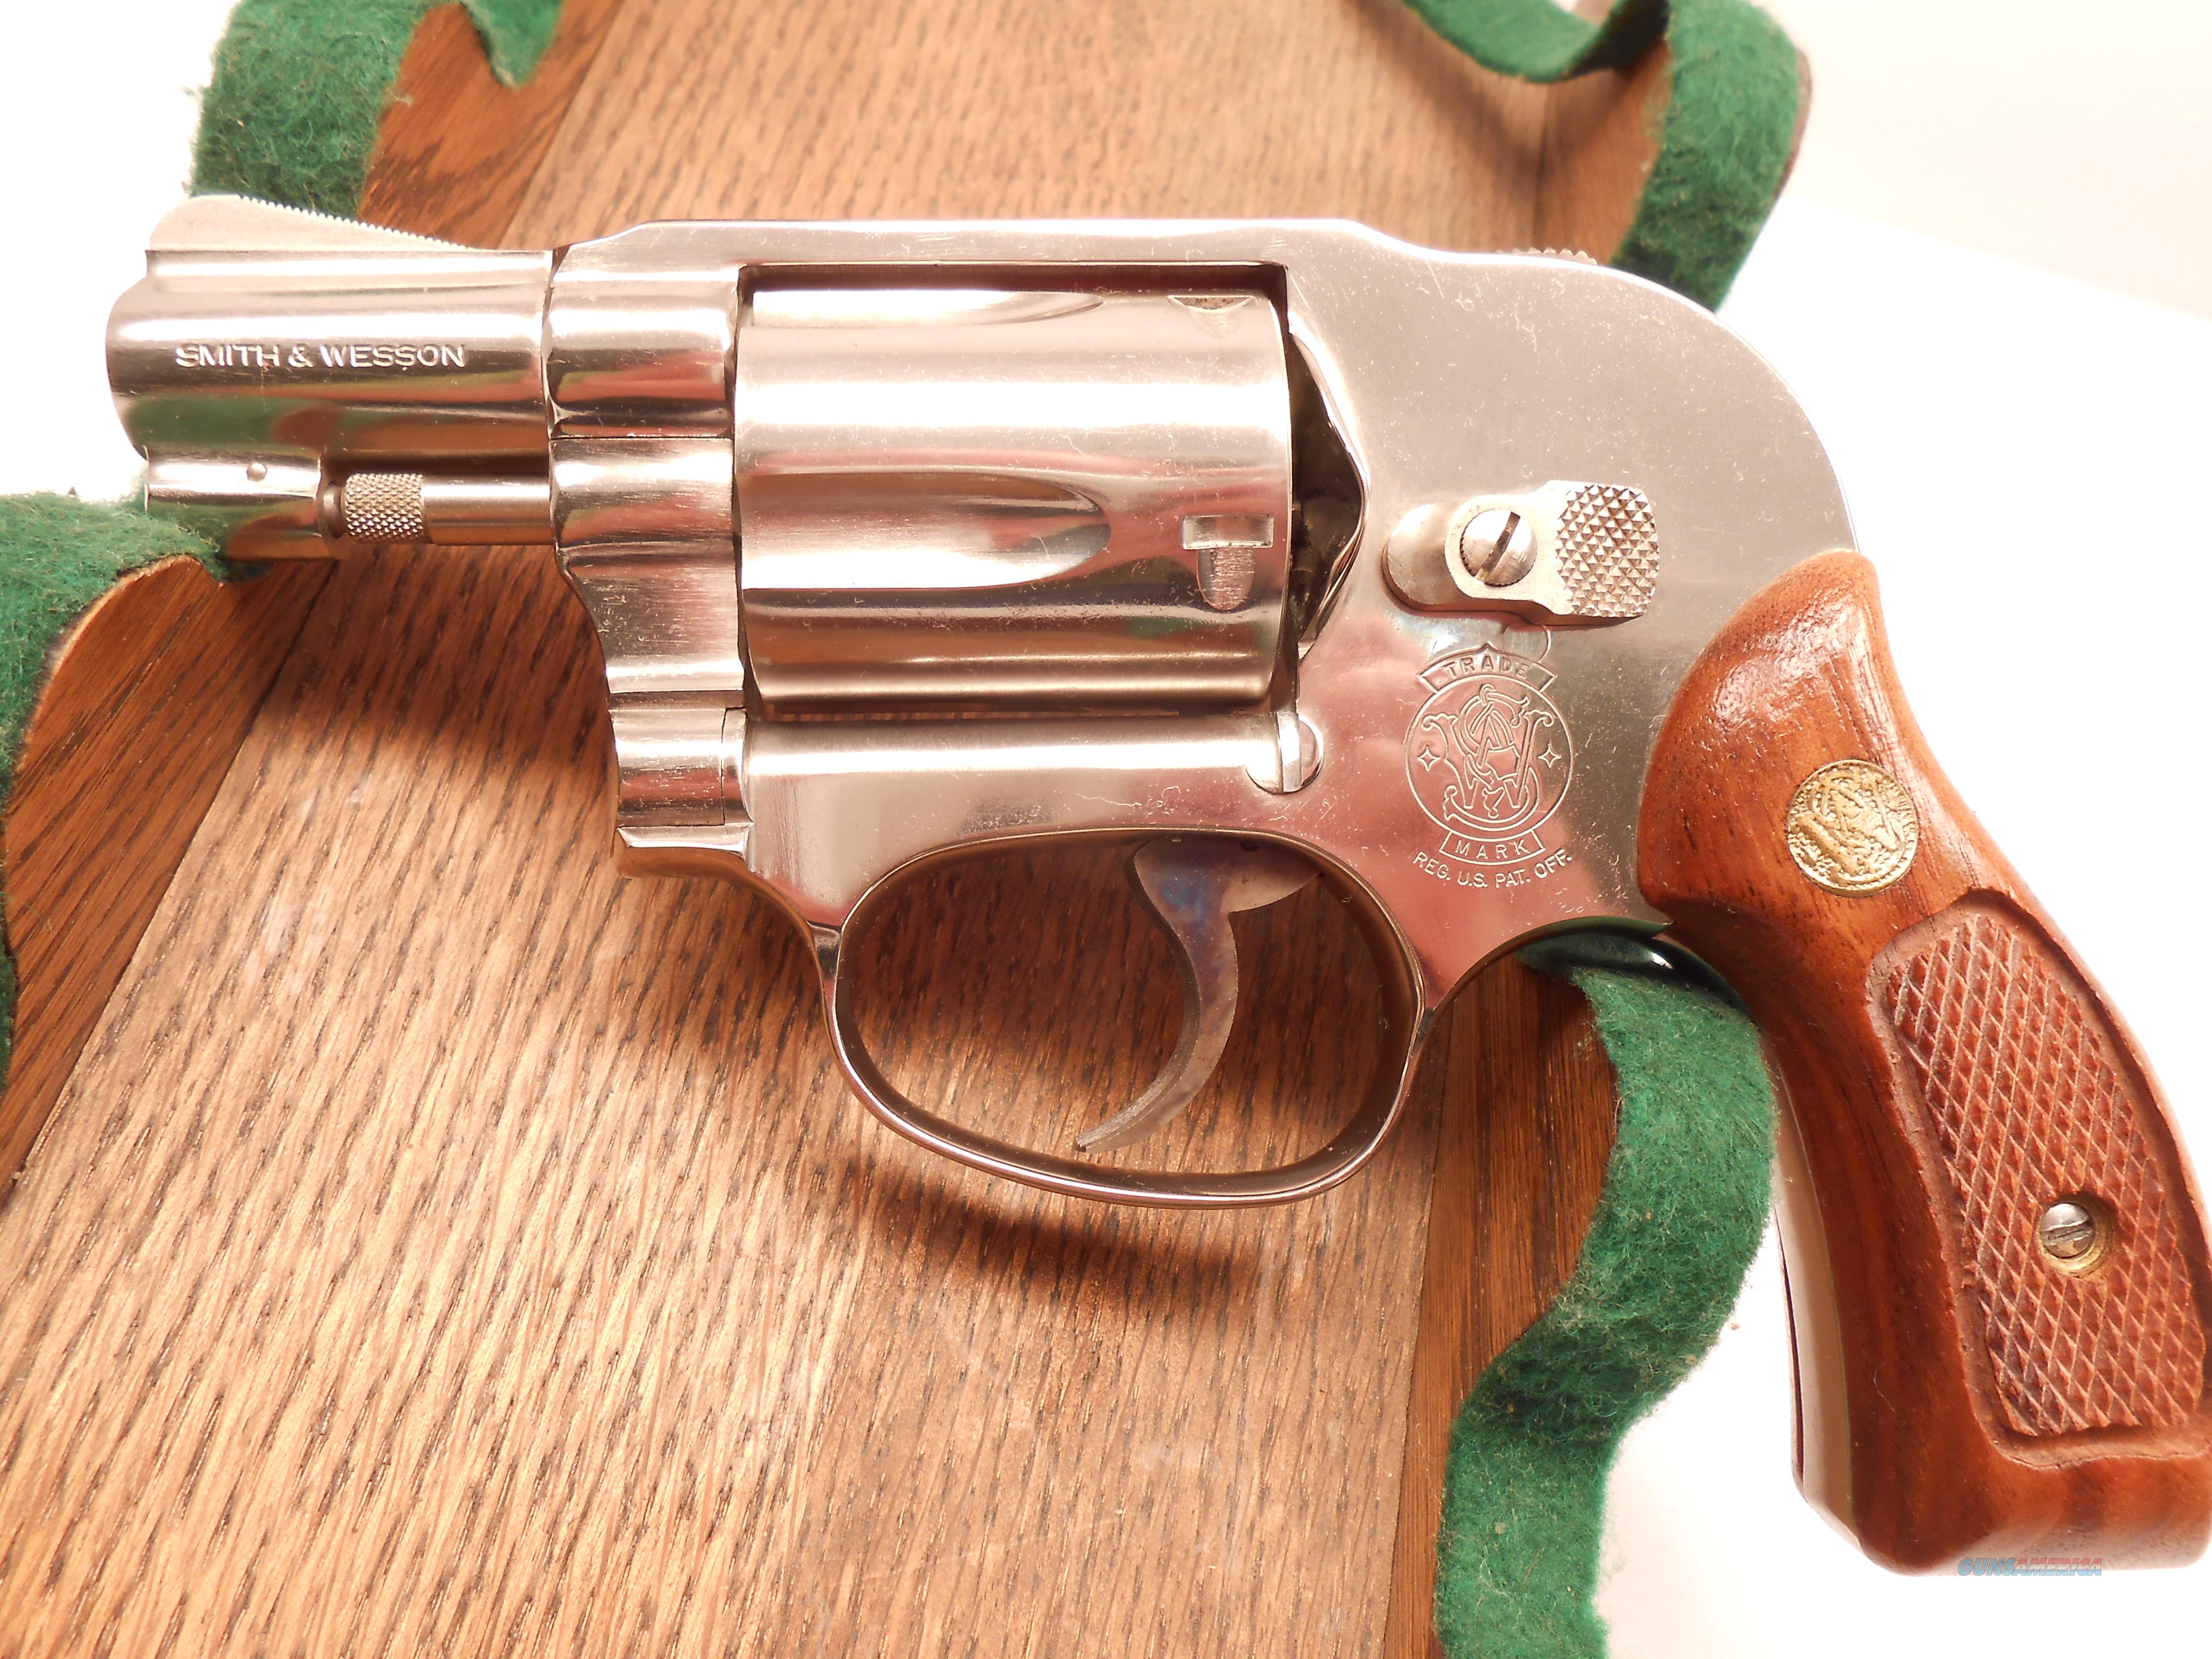 Like New Unfired Smith & Wesson Model 38 Nickle, NO LOCK, with Factory Box and Papers.  Guns > Pistols > Smith & Wesson Revolvers > Pocket Pistols